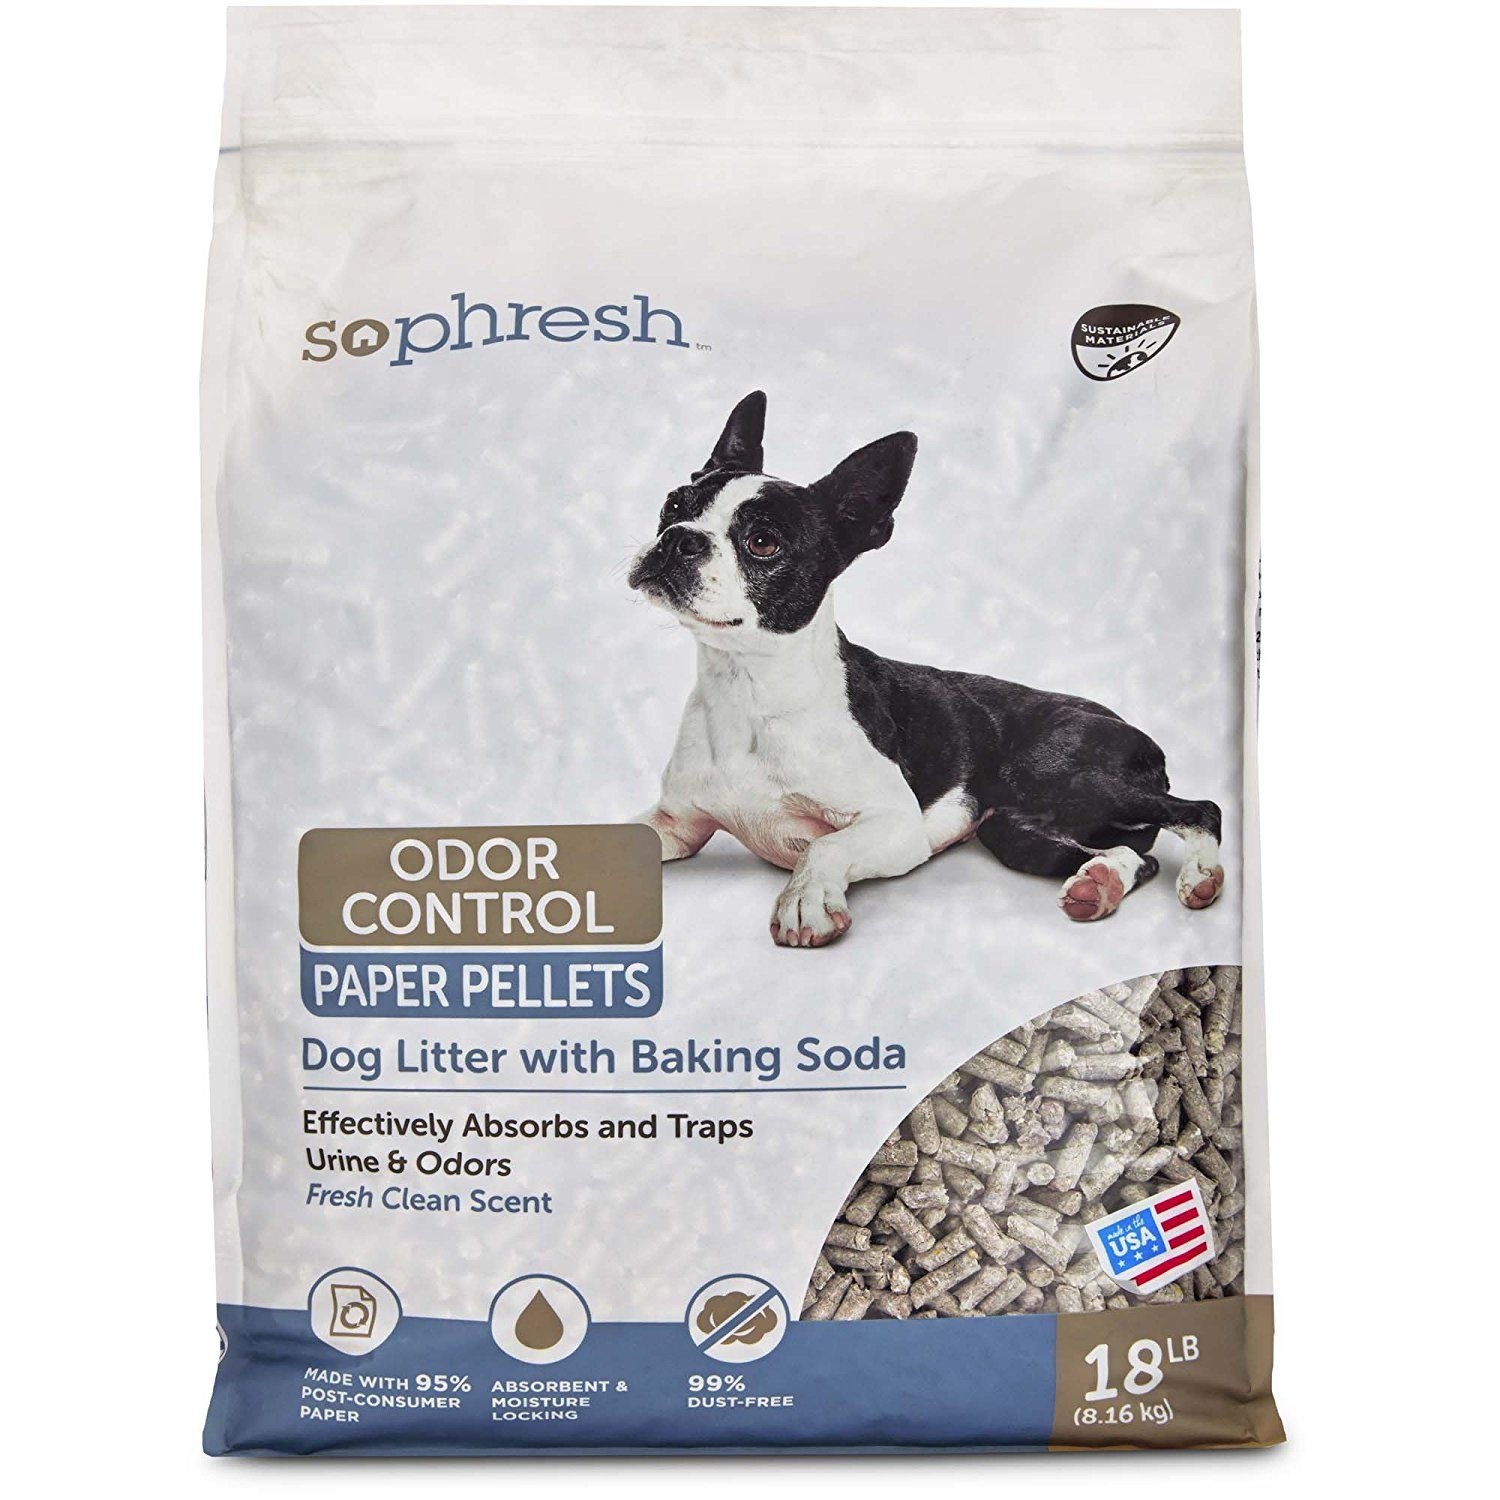 So Phresh Dog Litter with Odor Control Paper See this